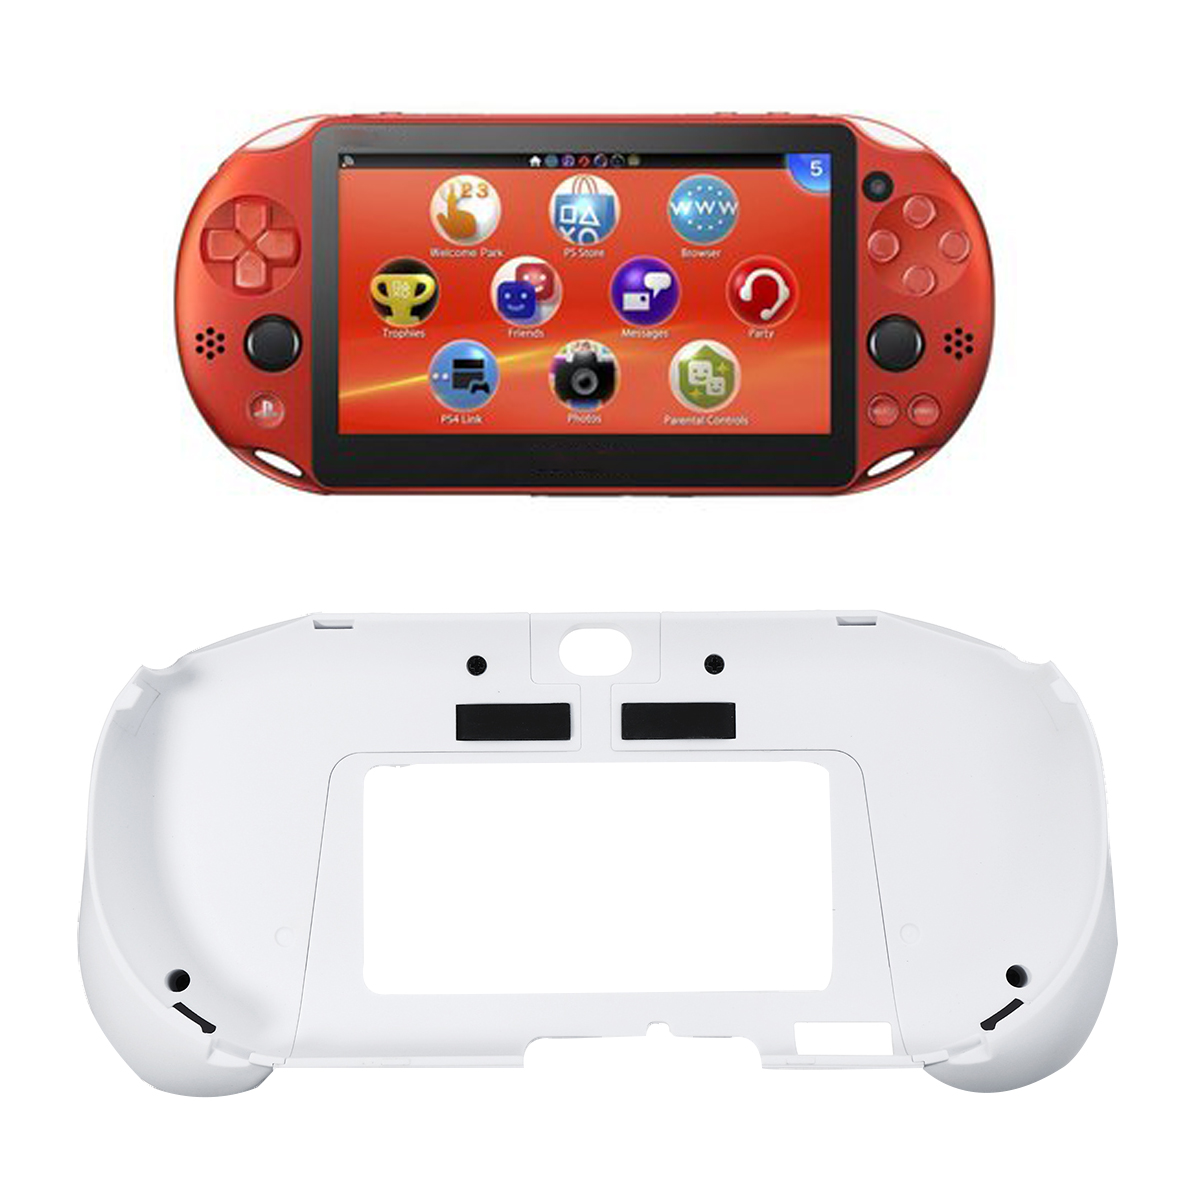 New Upgrade Version L2 R2 Handle Grip Case Cover Protector Trigger Grips Handle Holder Case For PS Vita 2000 GamePads Cases